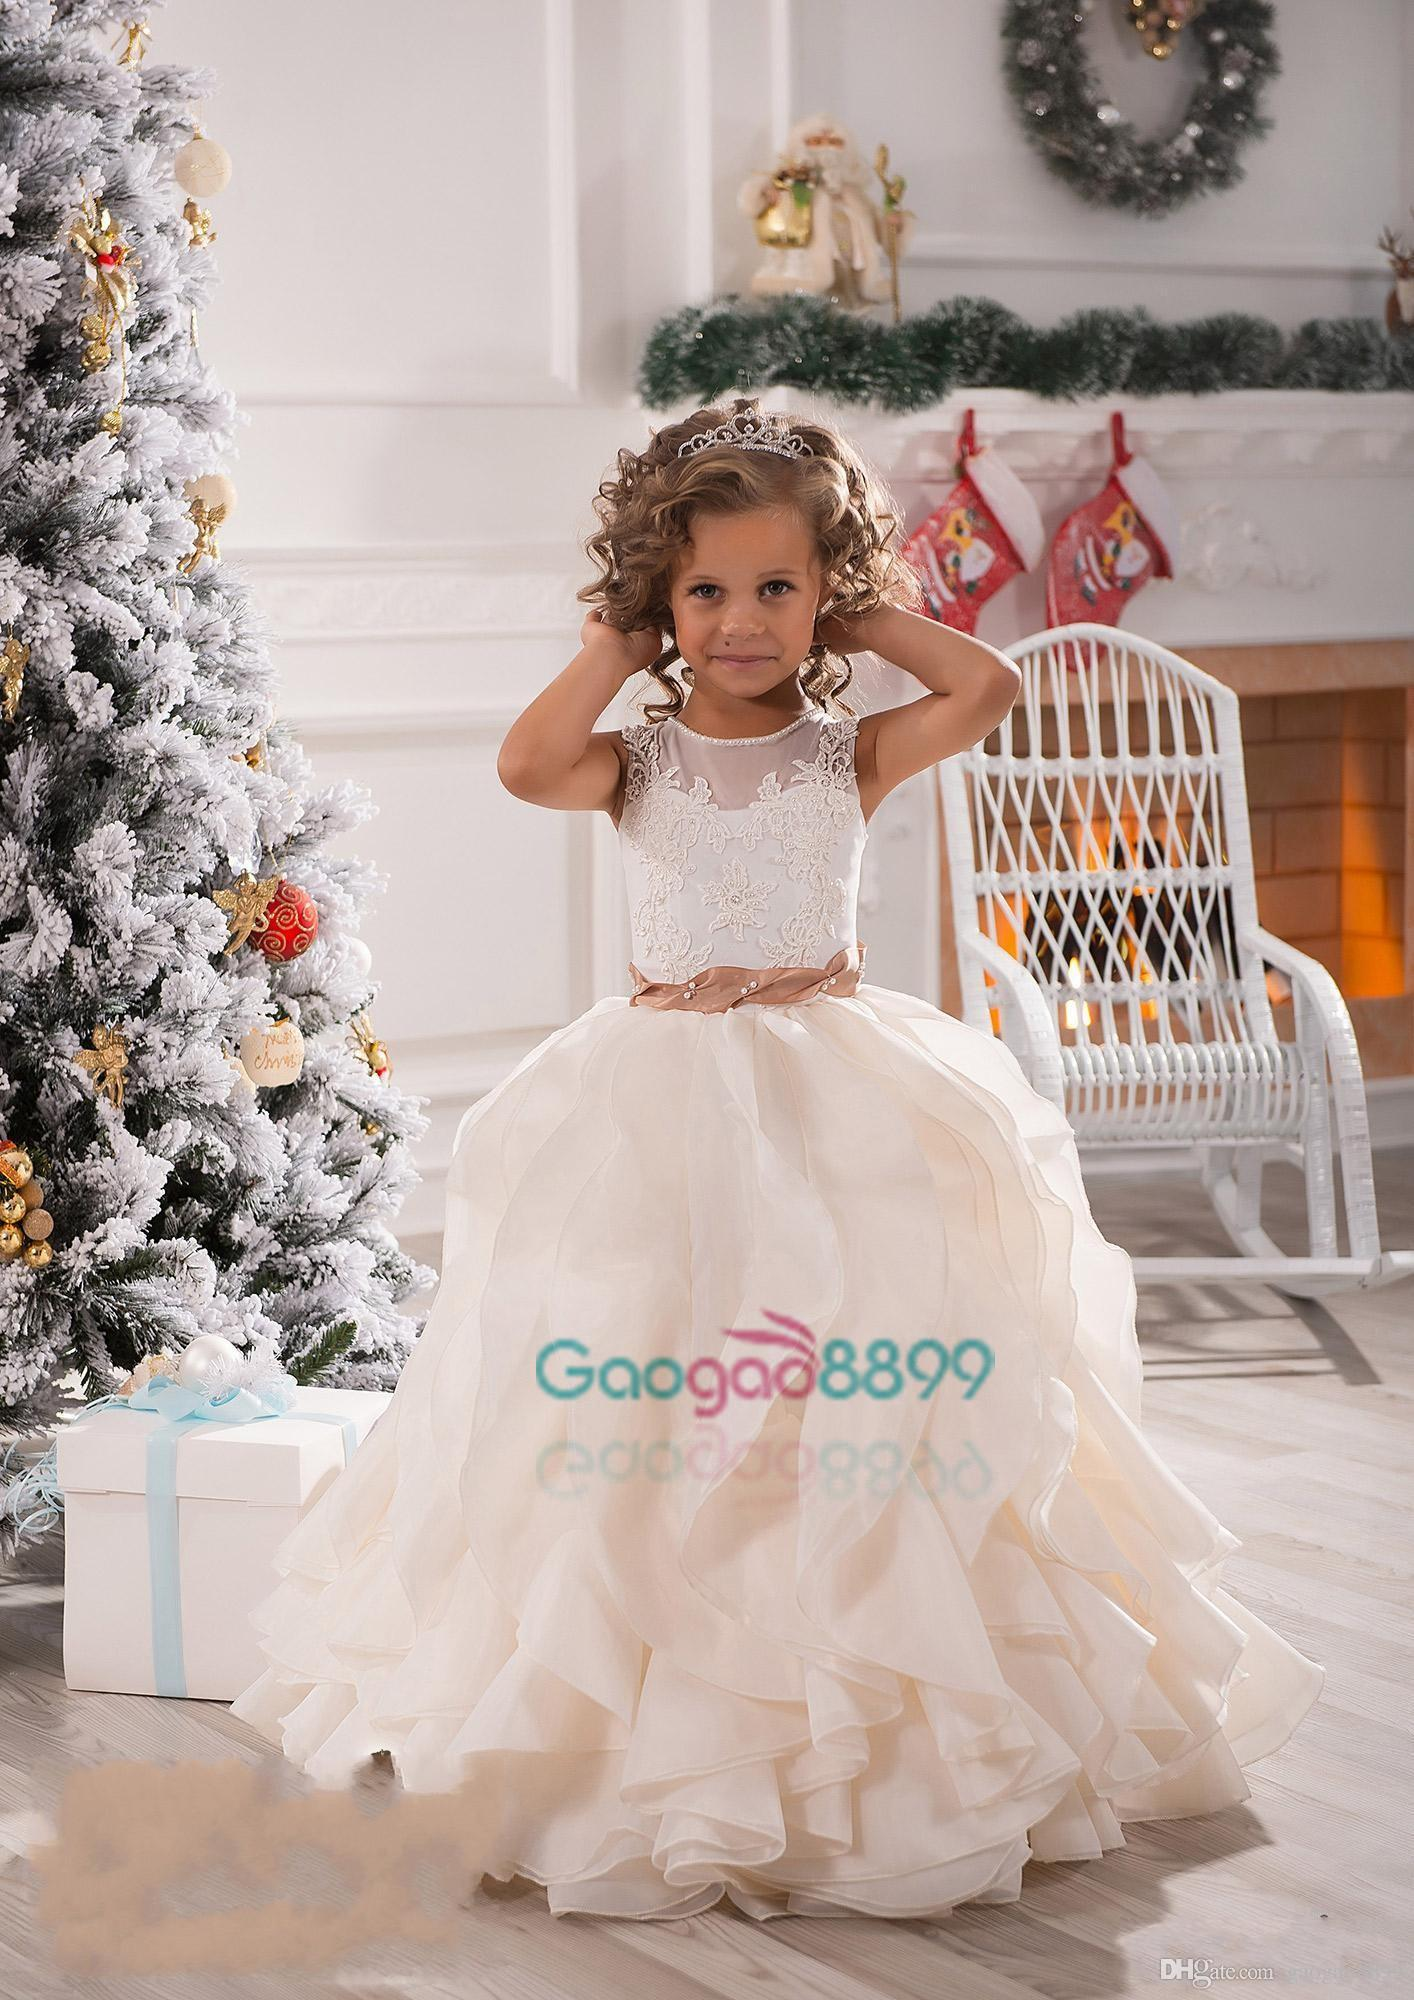 2017 new flower girls dresses for weddings illusion neck lace 2017 new flower girls dresses for weddings illusion neck lace white ivory sashes ruffles party princess children kids party birthday gowns girl flower ombrellifo Image collections